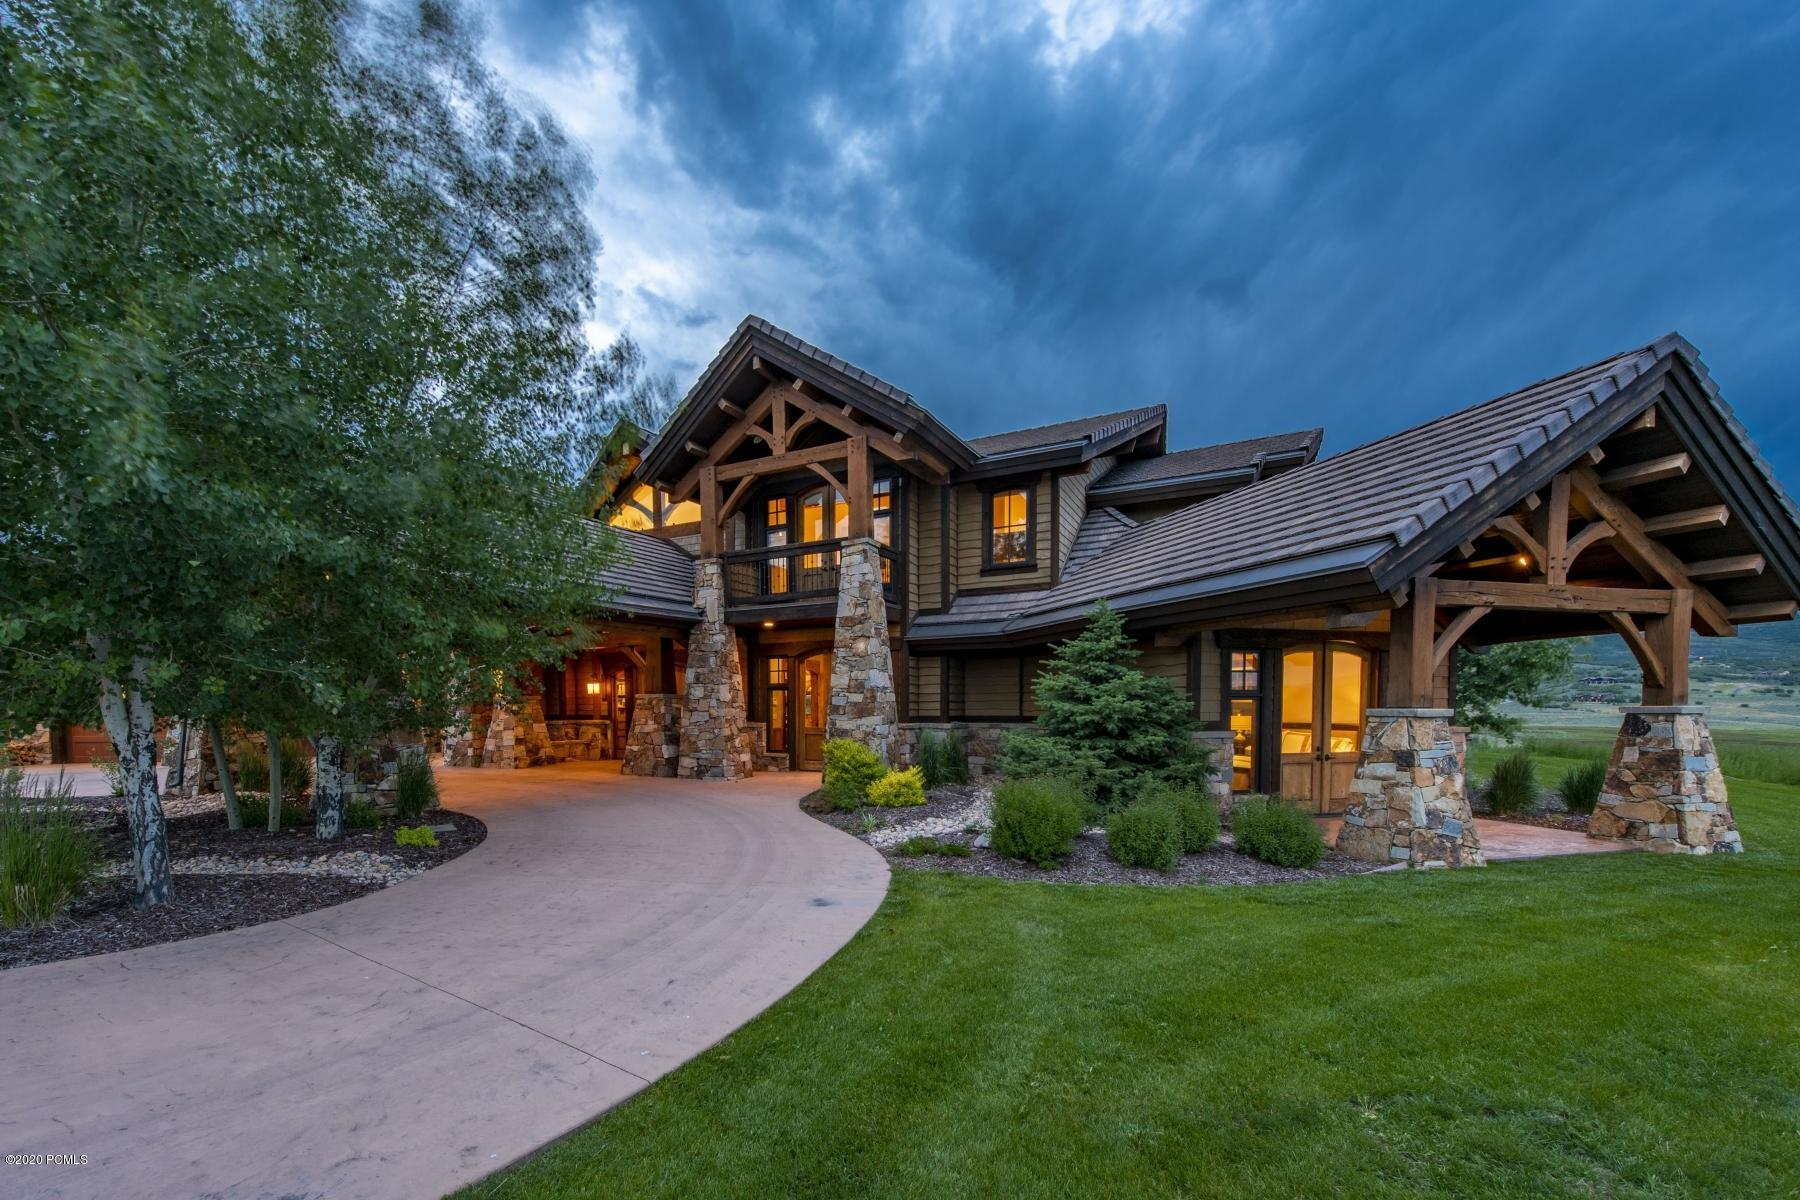 795 Hollyhock Street, Park City, Utah 84098, 5 Bedrooms Bedrooms, ,8 BathroomsBathrooms,Single Family,For Sale,Hollyhock,20190109112430415765000000